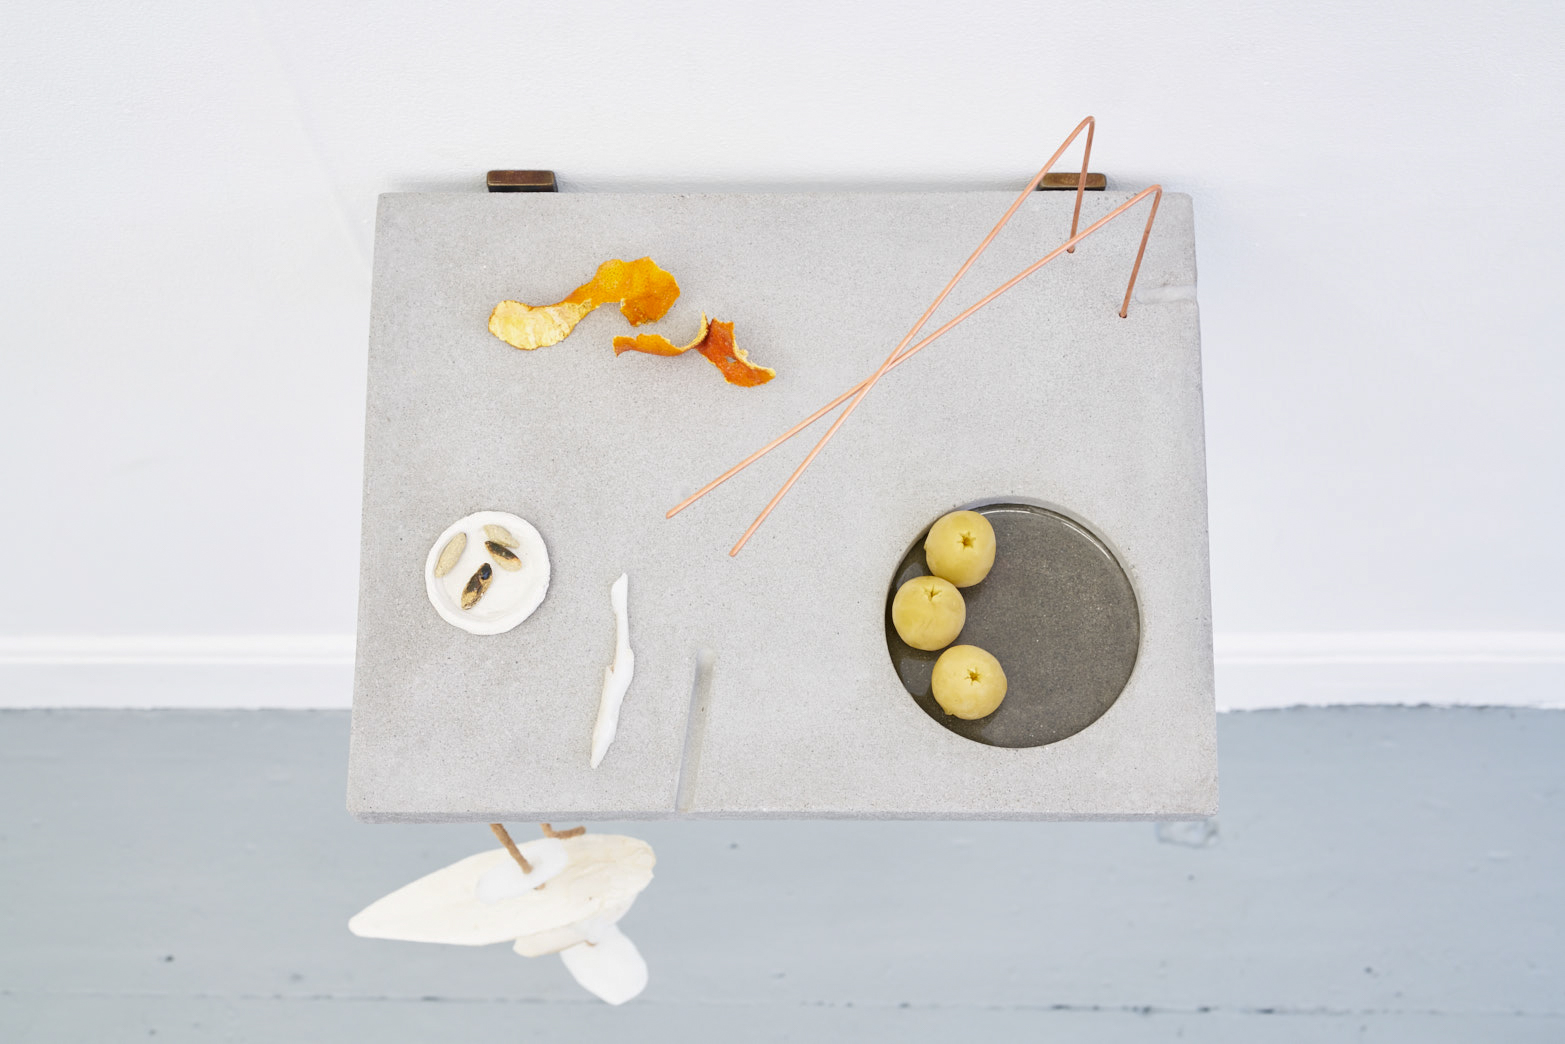 Victoria Adam, Personal Unique pH (potpourri), 2018, Plaster polymer, copper rods, leather, cuttle sh, soap, orange peel, airdry clay, glazed ceramic, beeswax, resin